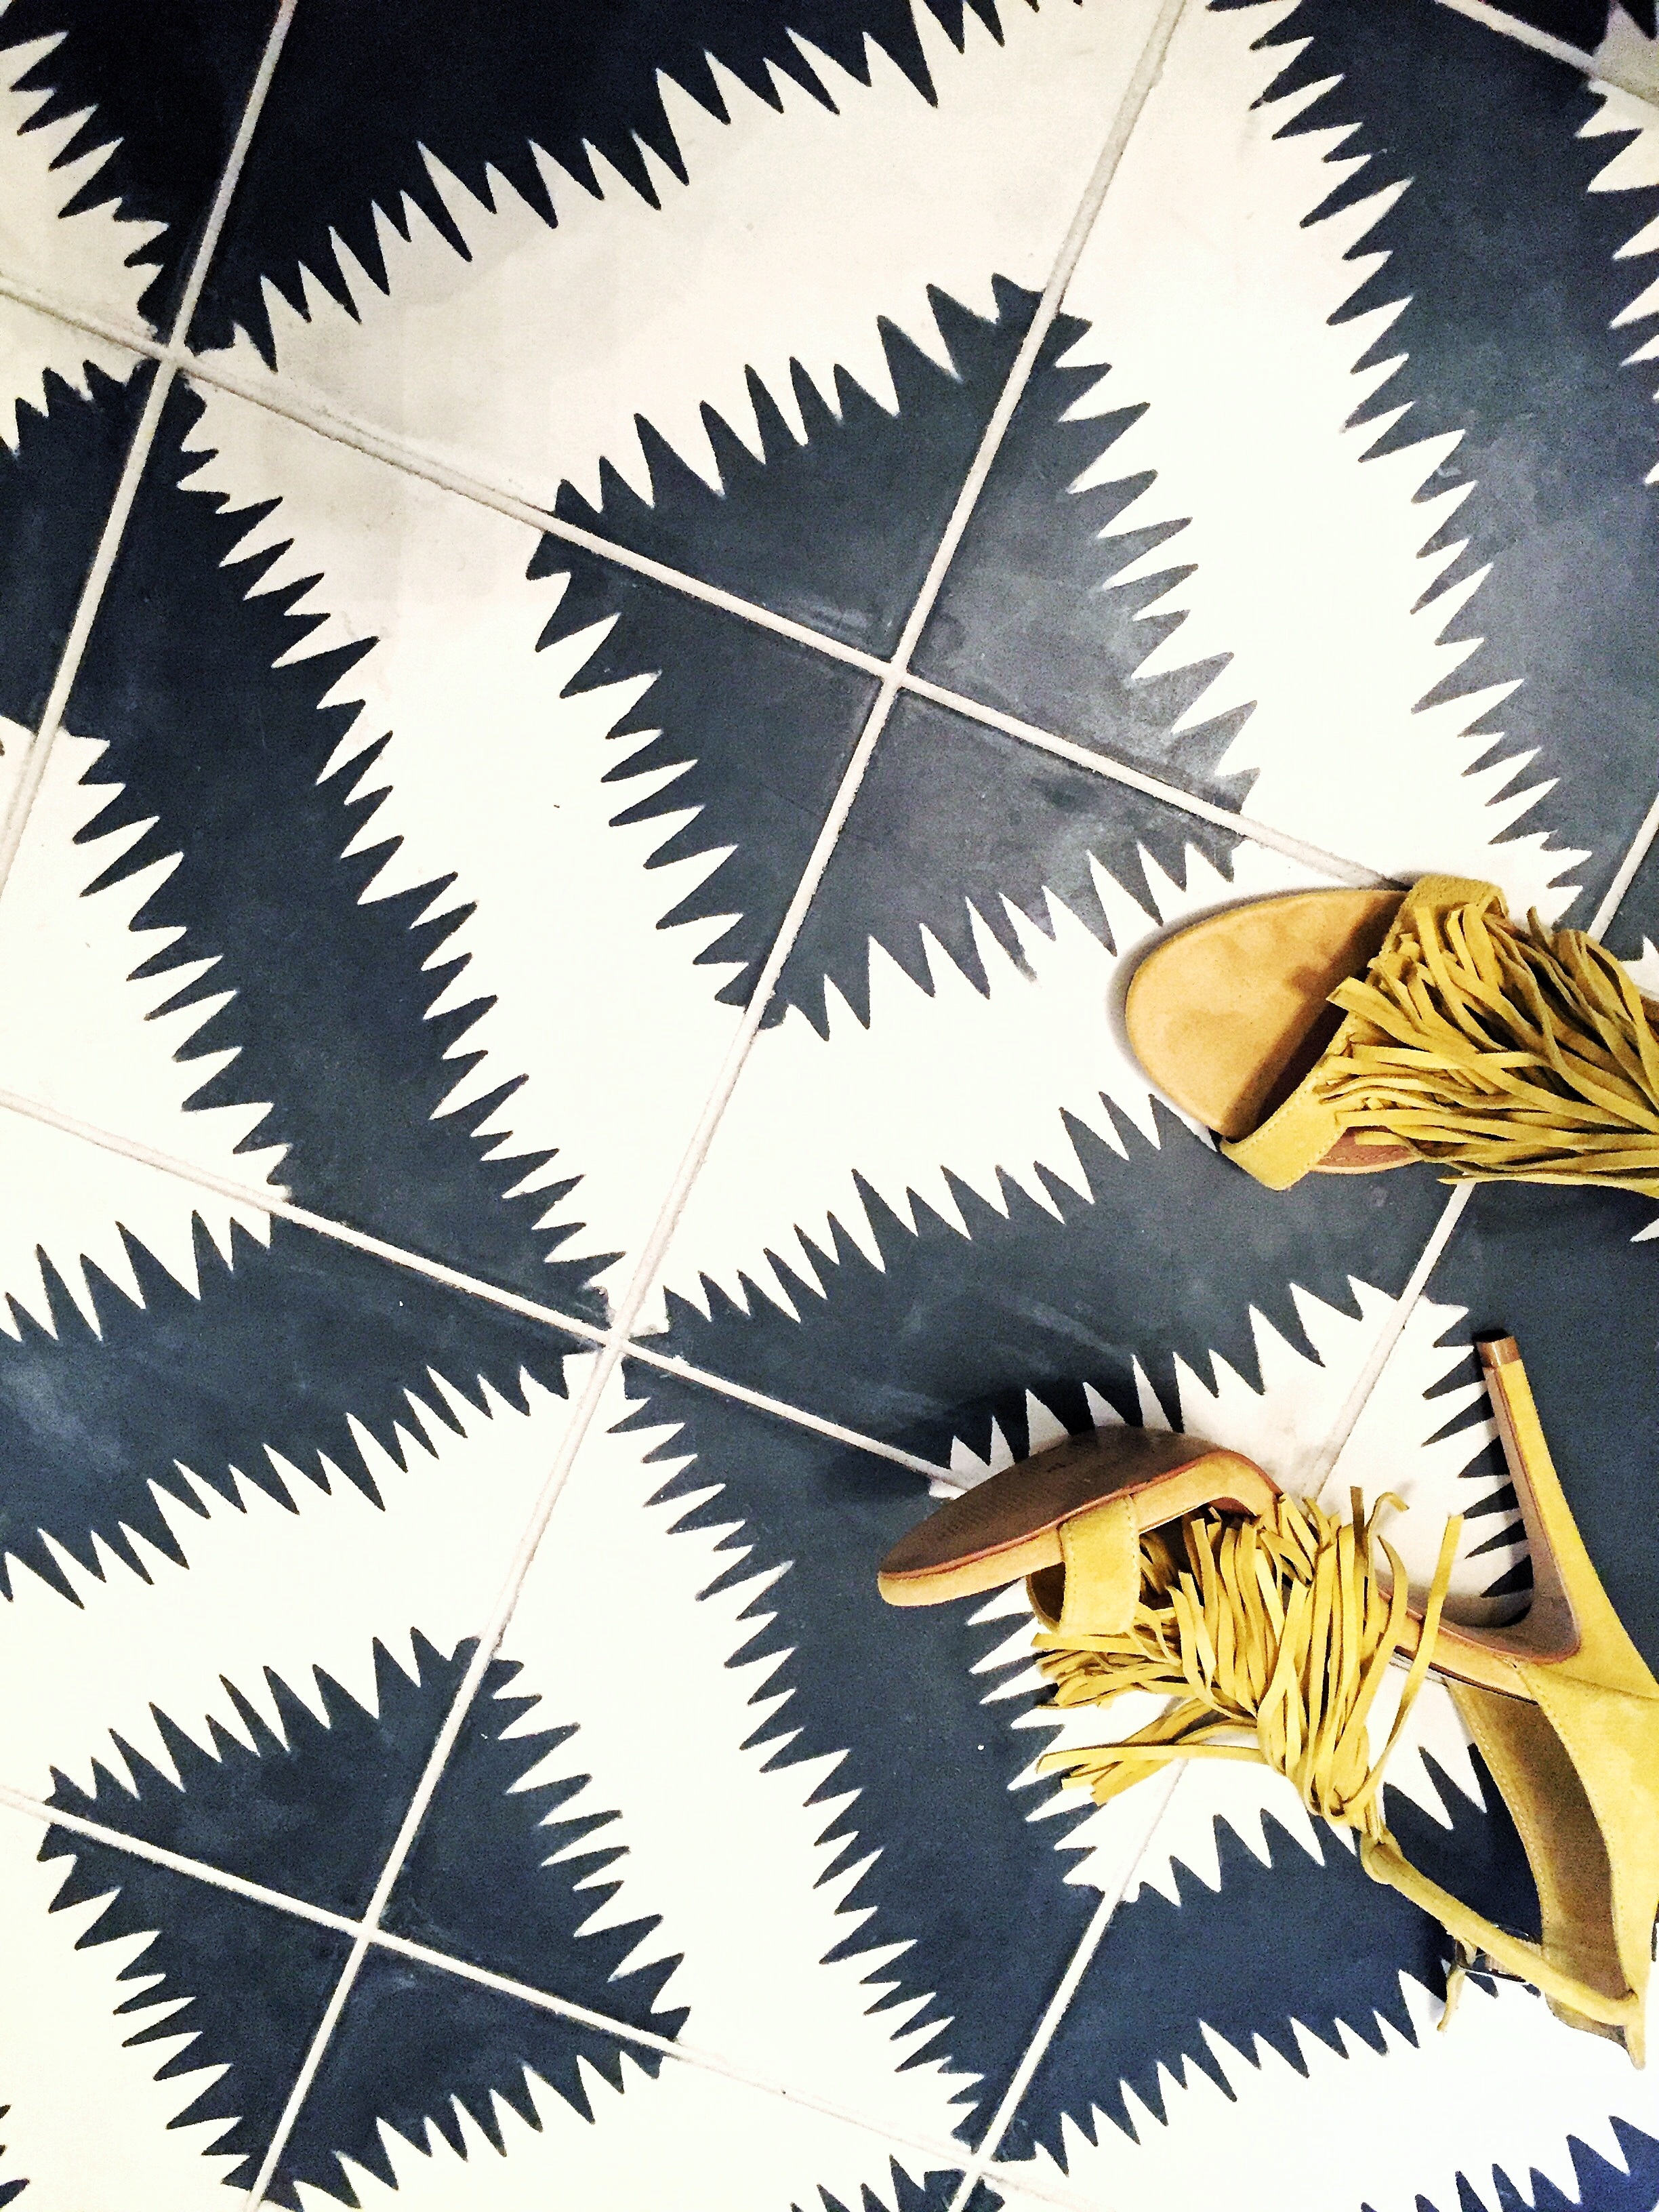 Ann Sacks Black and White Tile, Graphic Tile, Black and White Tiles, Concrete Tile, Modern Tile